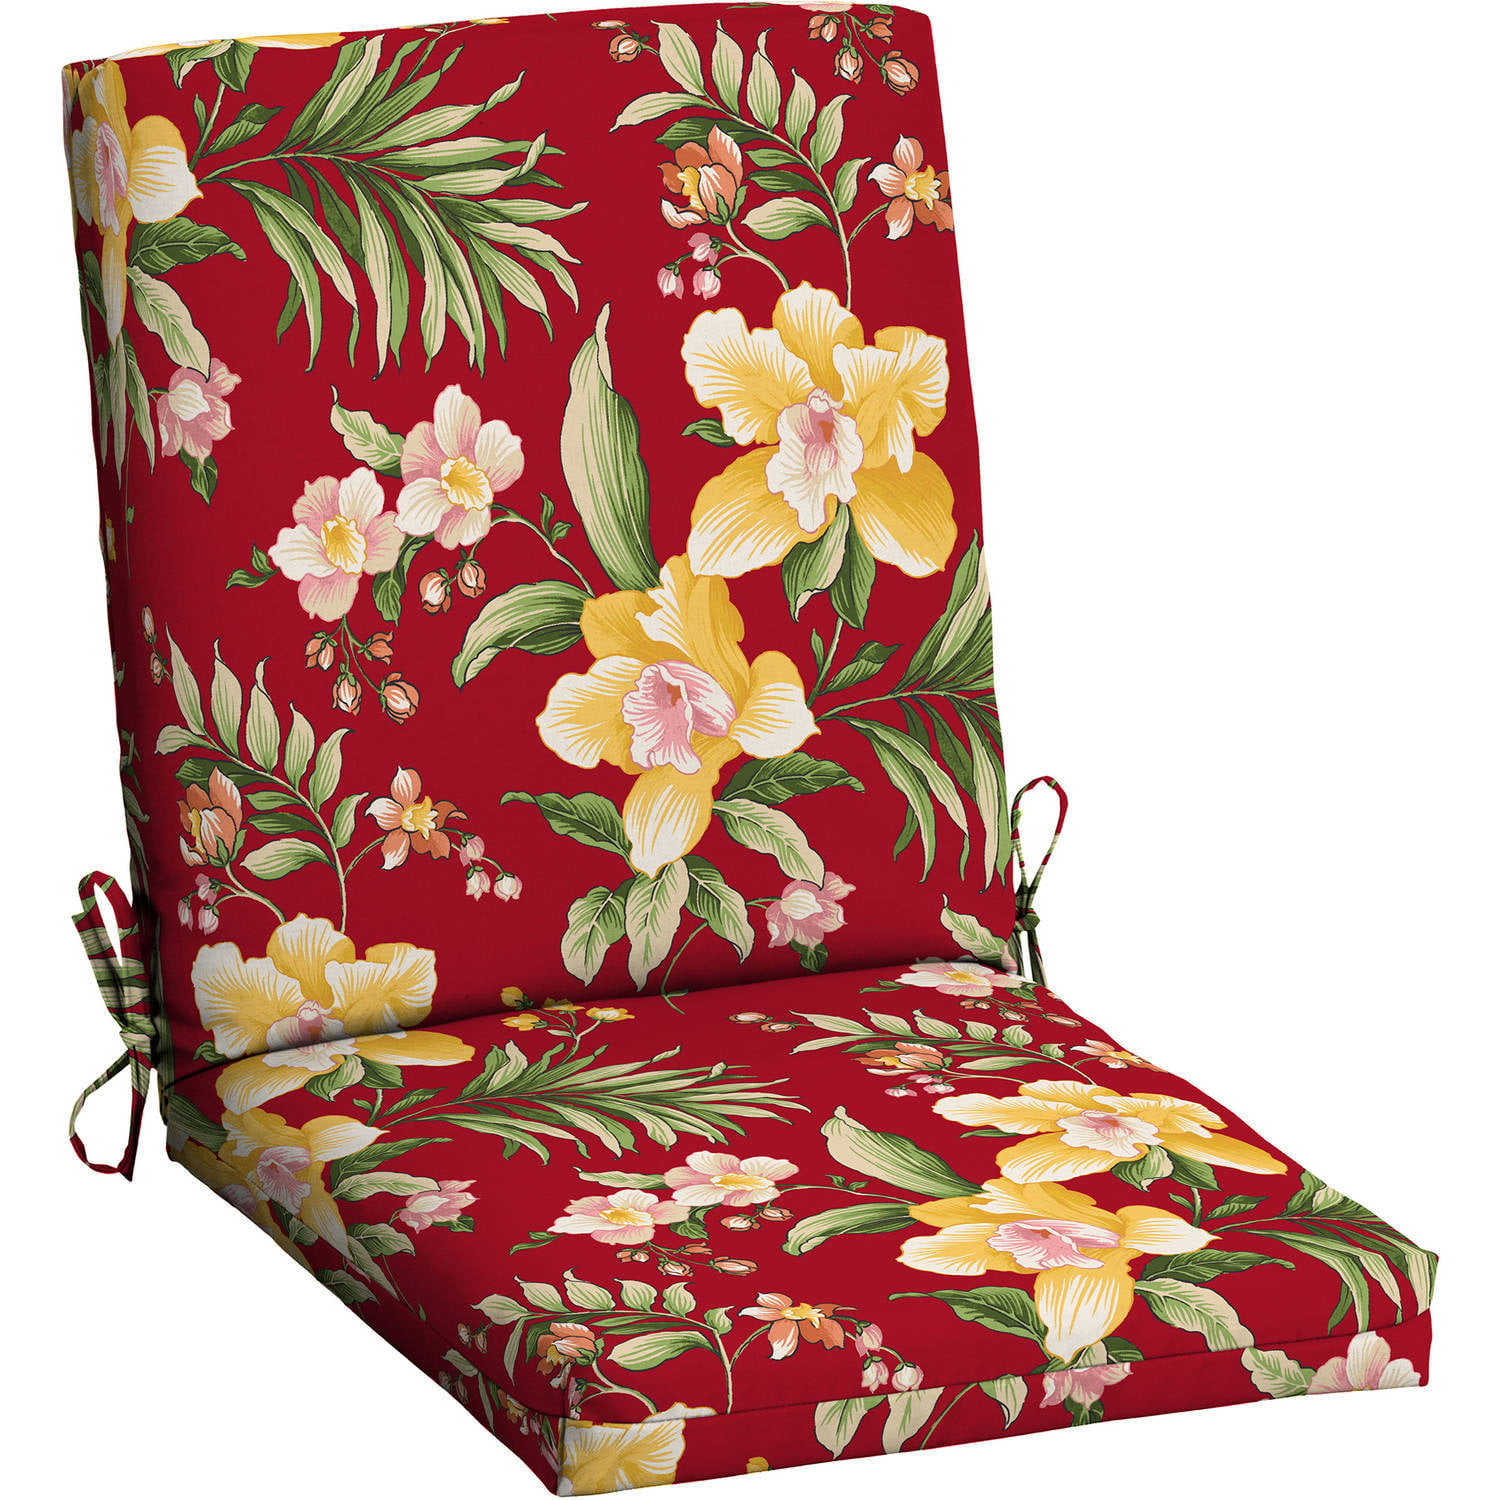 walmart outdoor chair cushions Mainstays Outdoor Patio Dining Chair Cushion, Red Tropical  walmart outdoor chair cushions